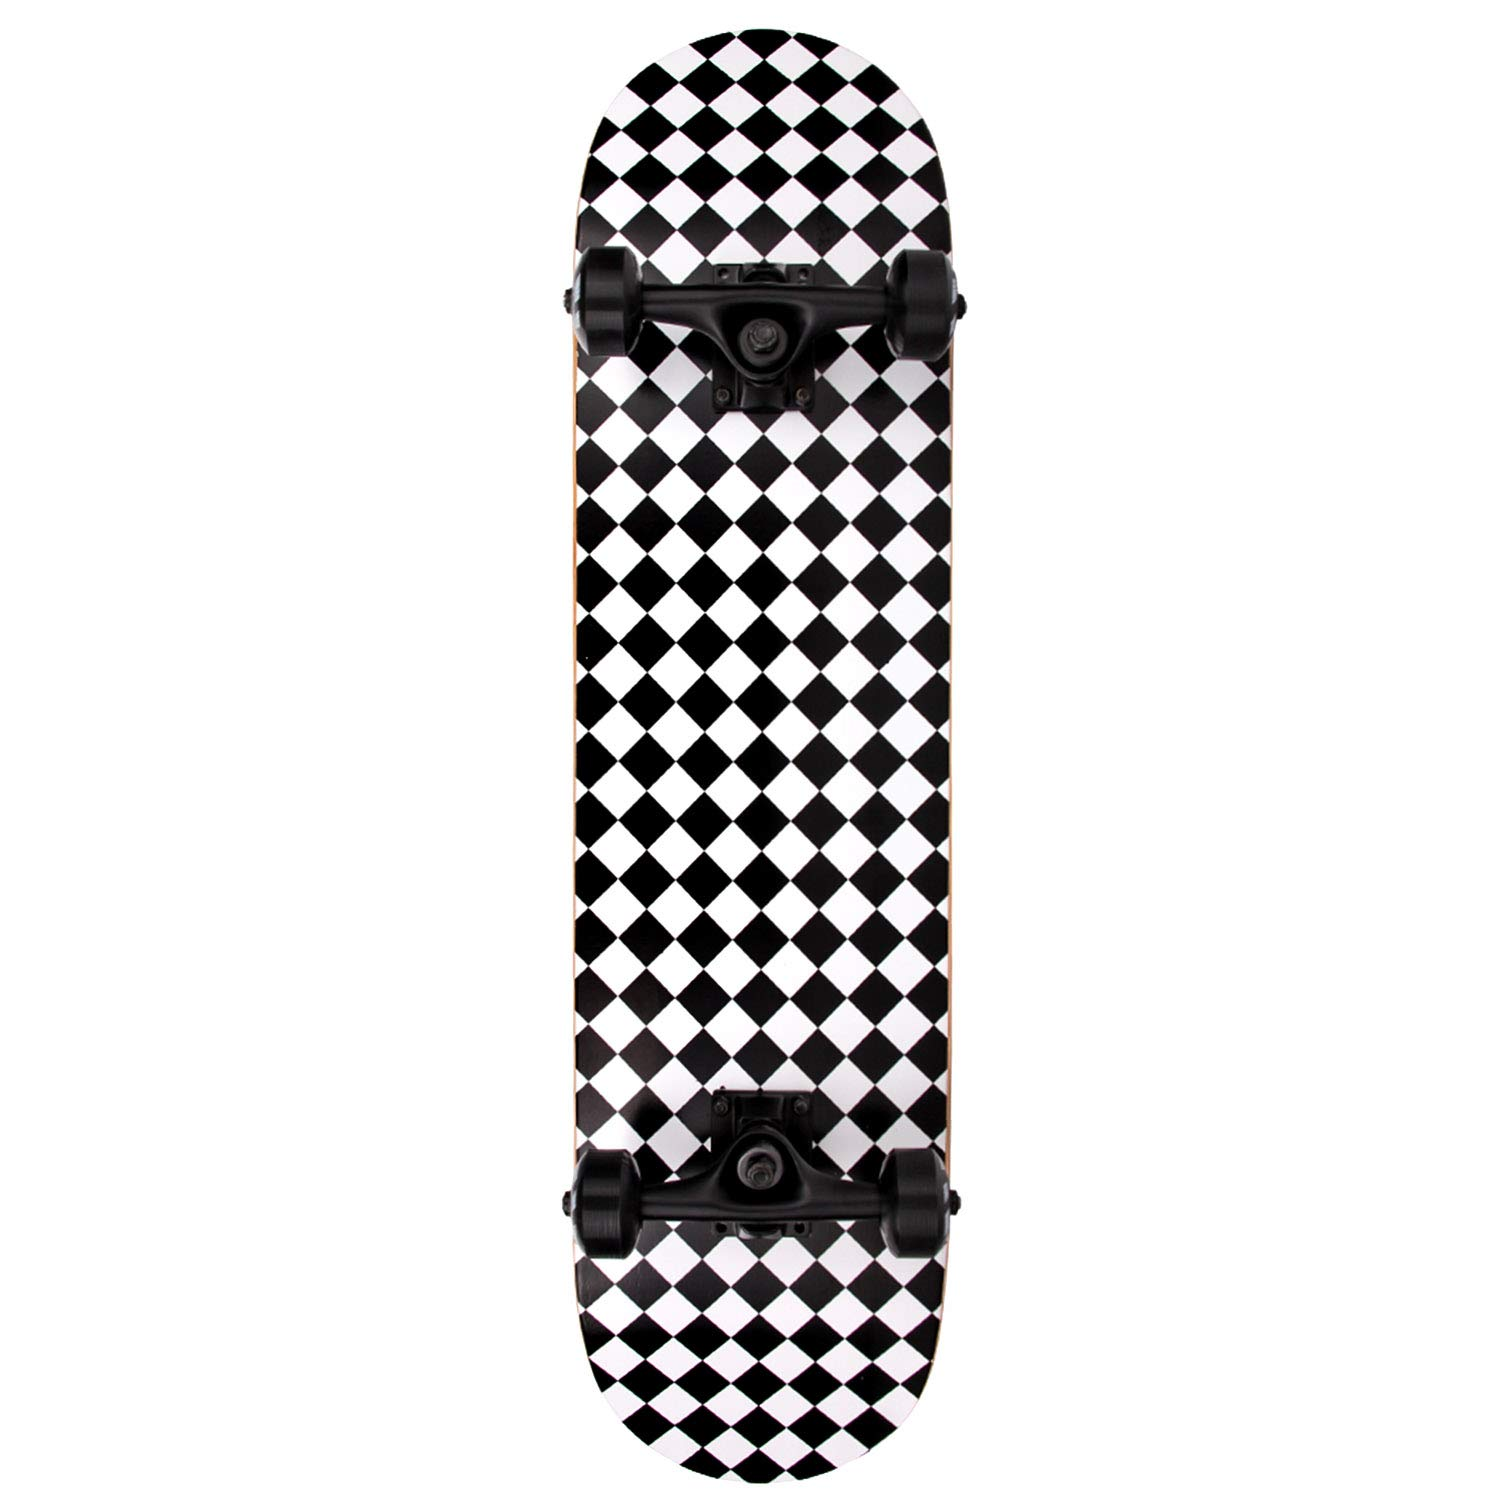 NPET Pro Skateboard Complete 31 Inch 7 Layer Canadian Maple Double Kick Concave Deck Skating Skateboard (Black & White Graphic)